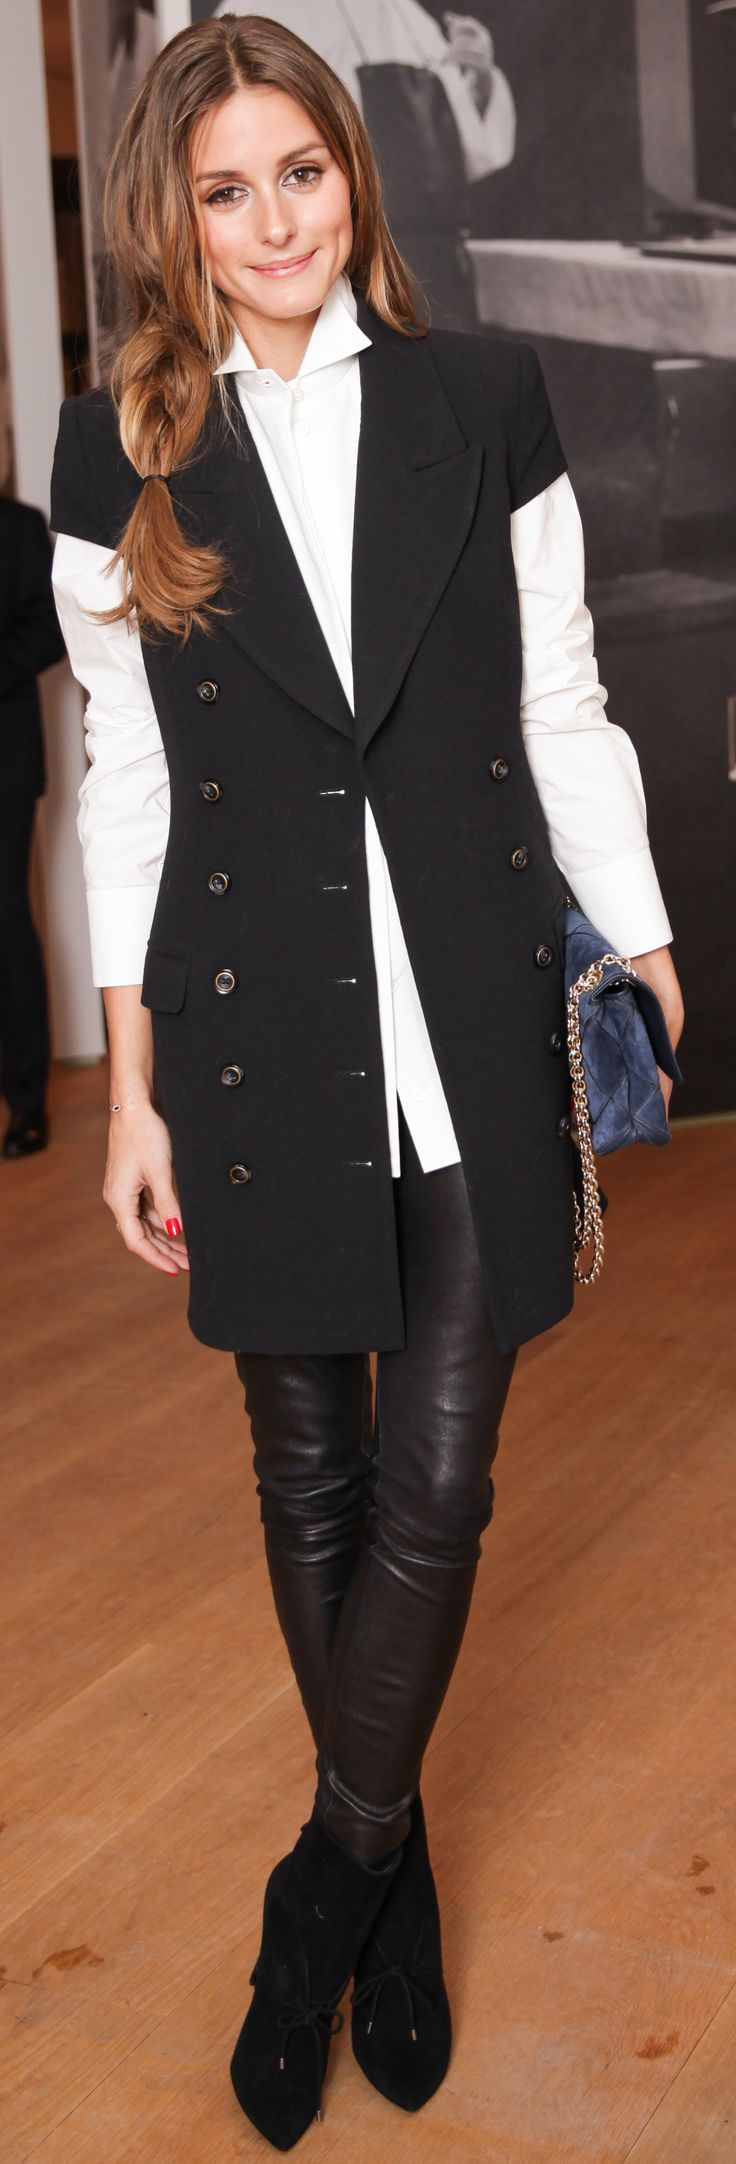 Your Man Could Take Styling Lessons From Olivia Palermo